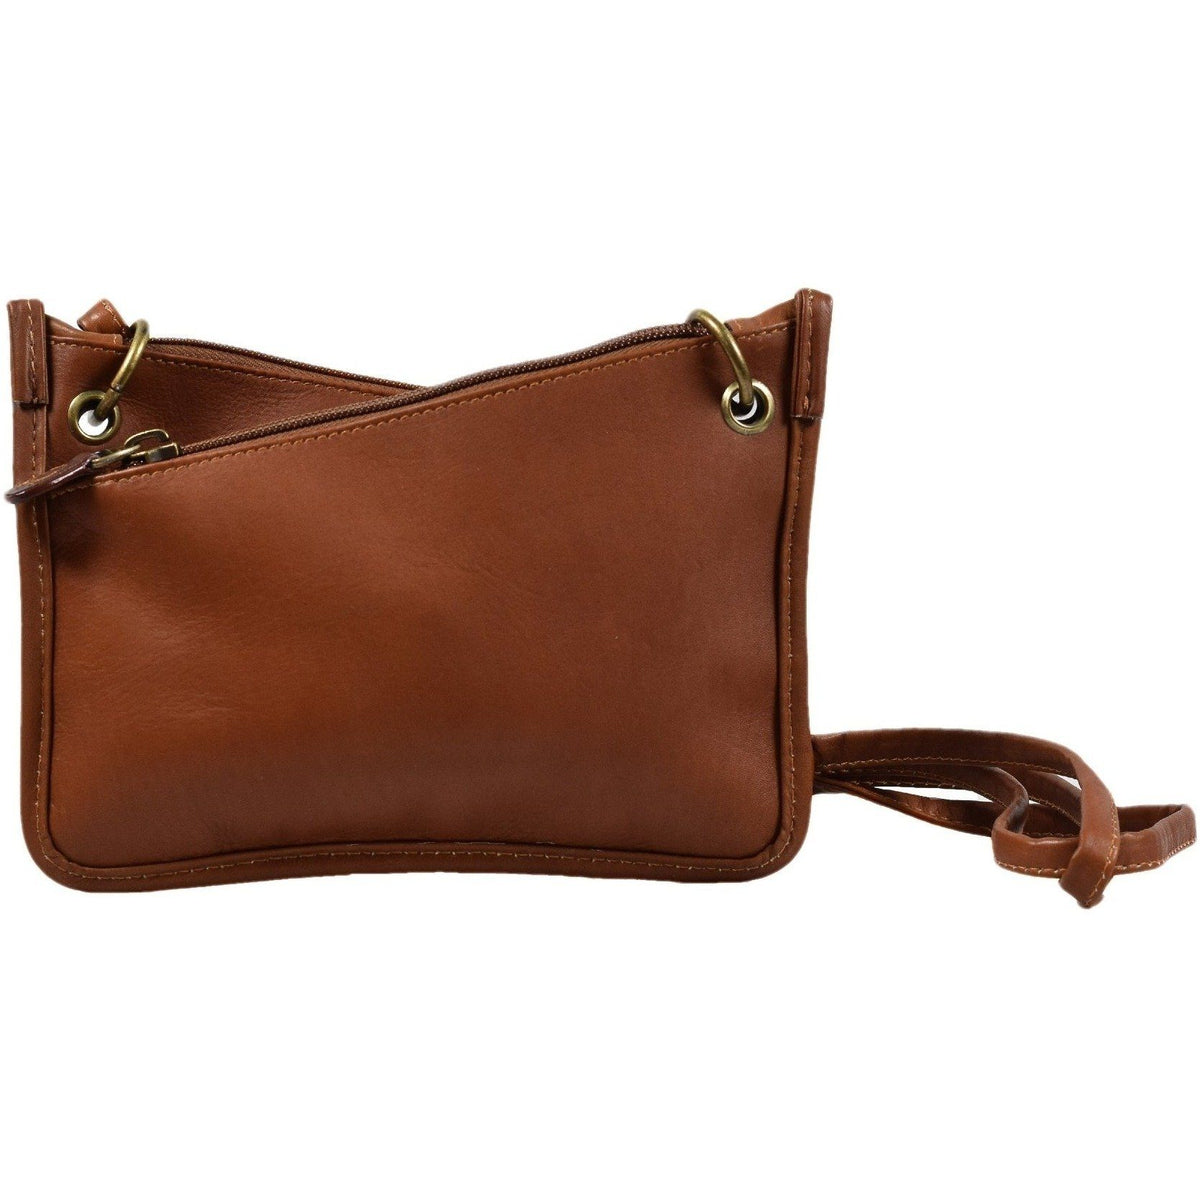 Santa Fe Barbie Bag, Crossover Bag | LAND Leather